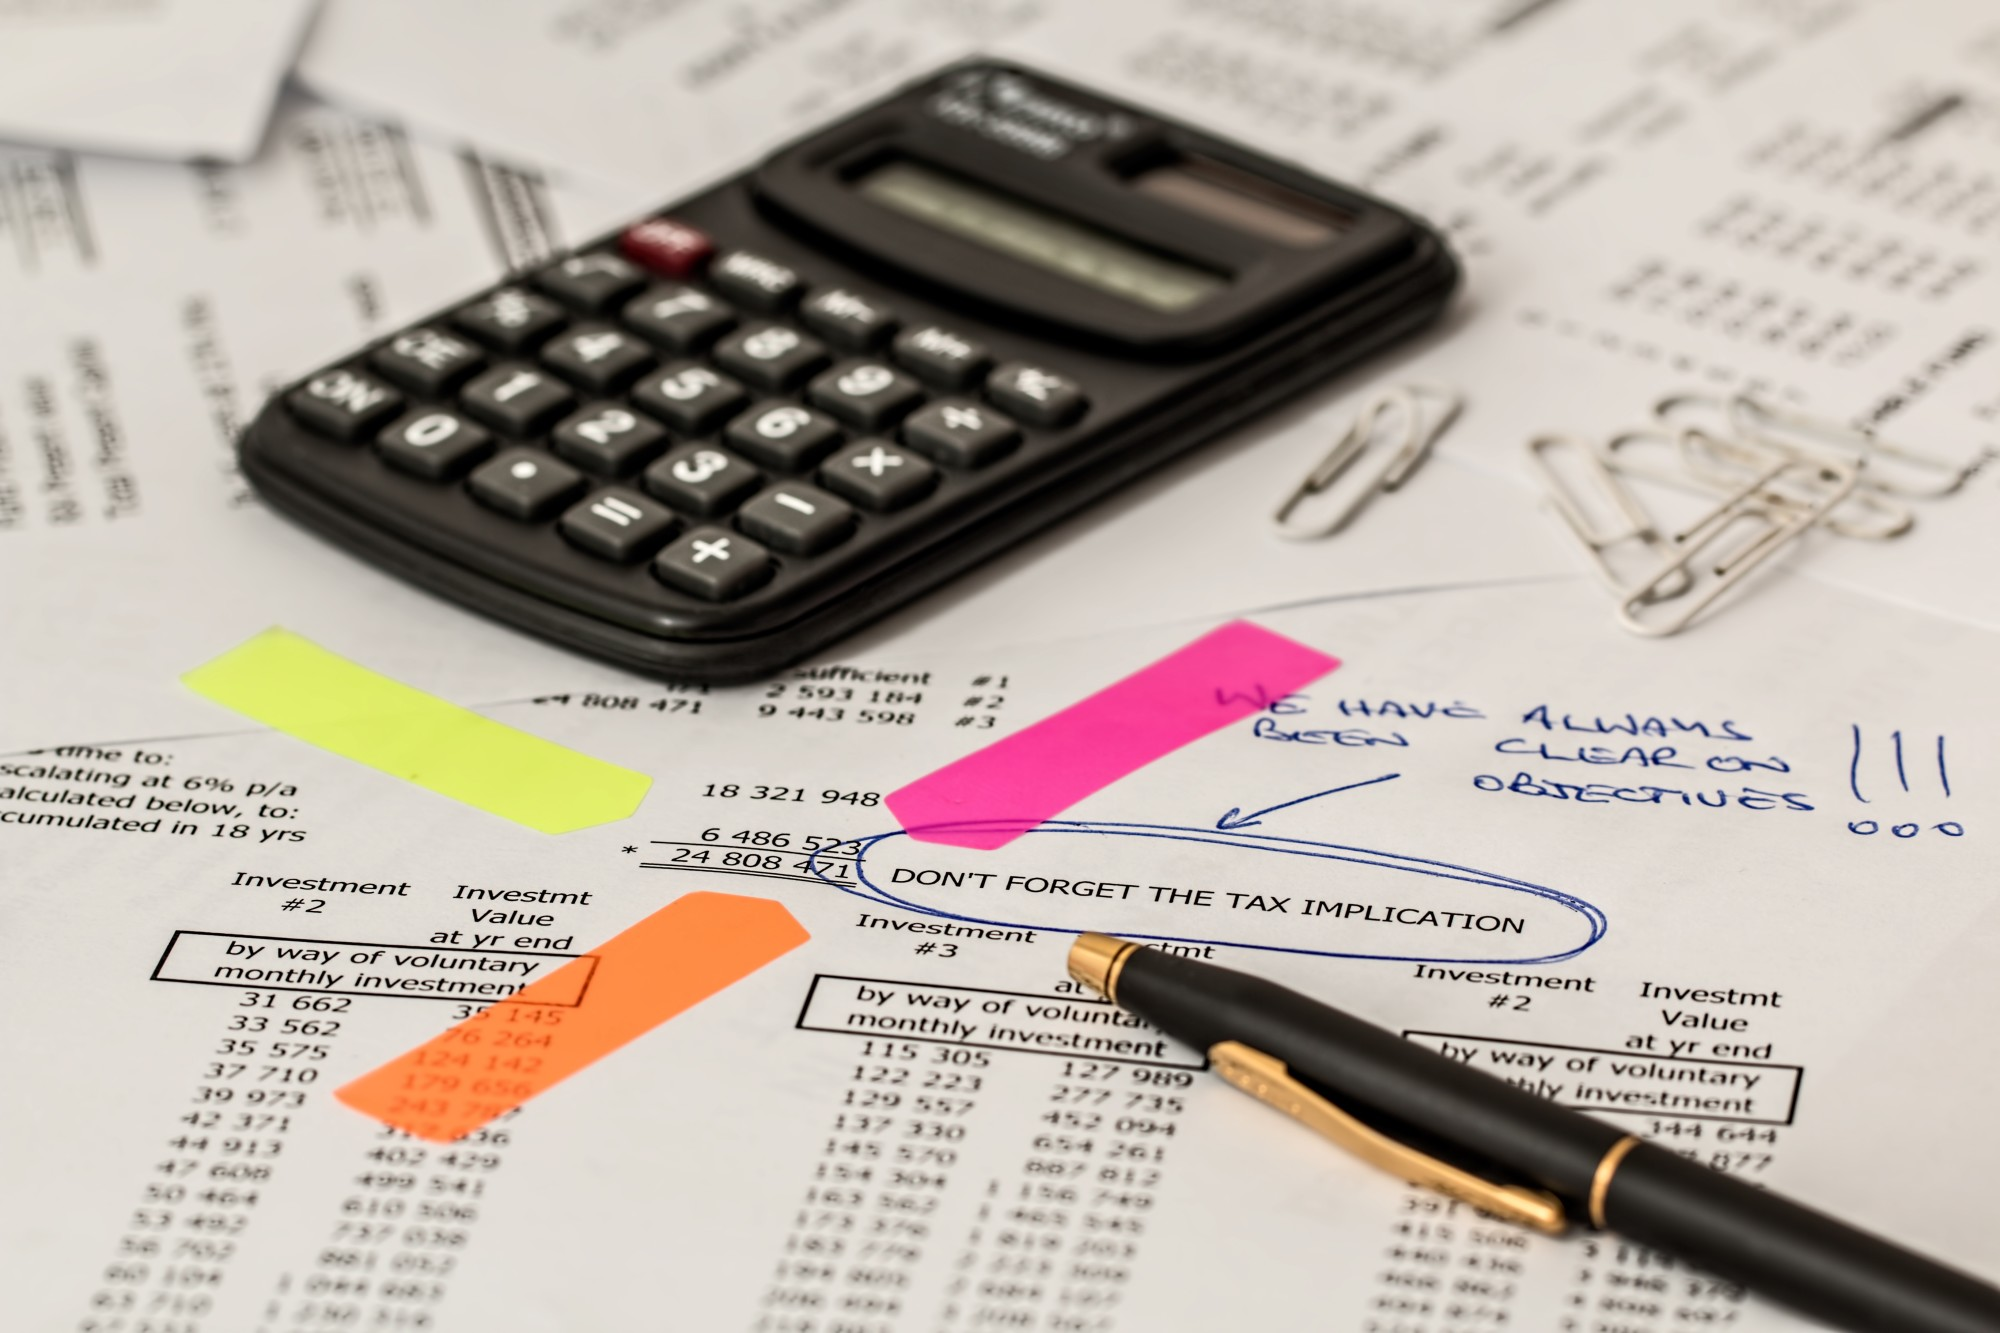 5 Key Tips for Starting an Online Bookkeeping Business